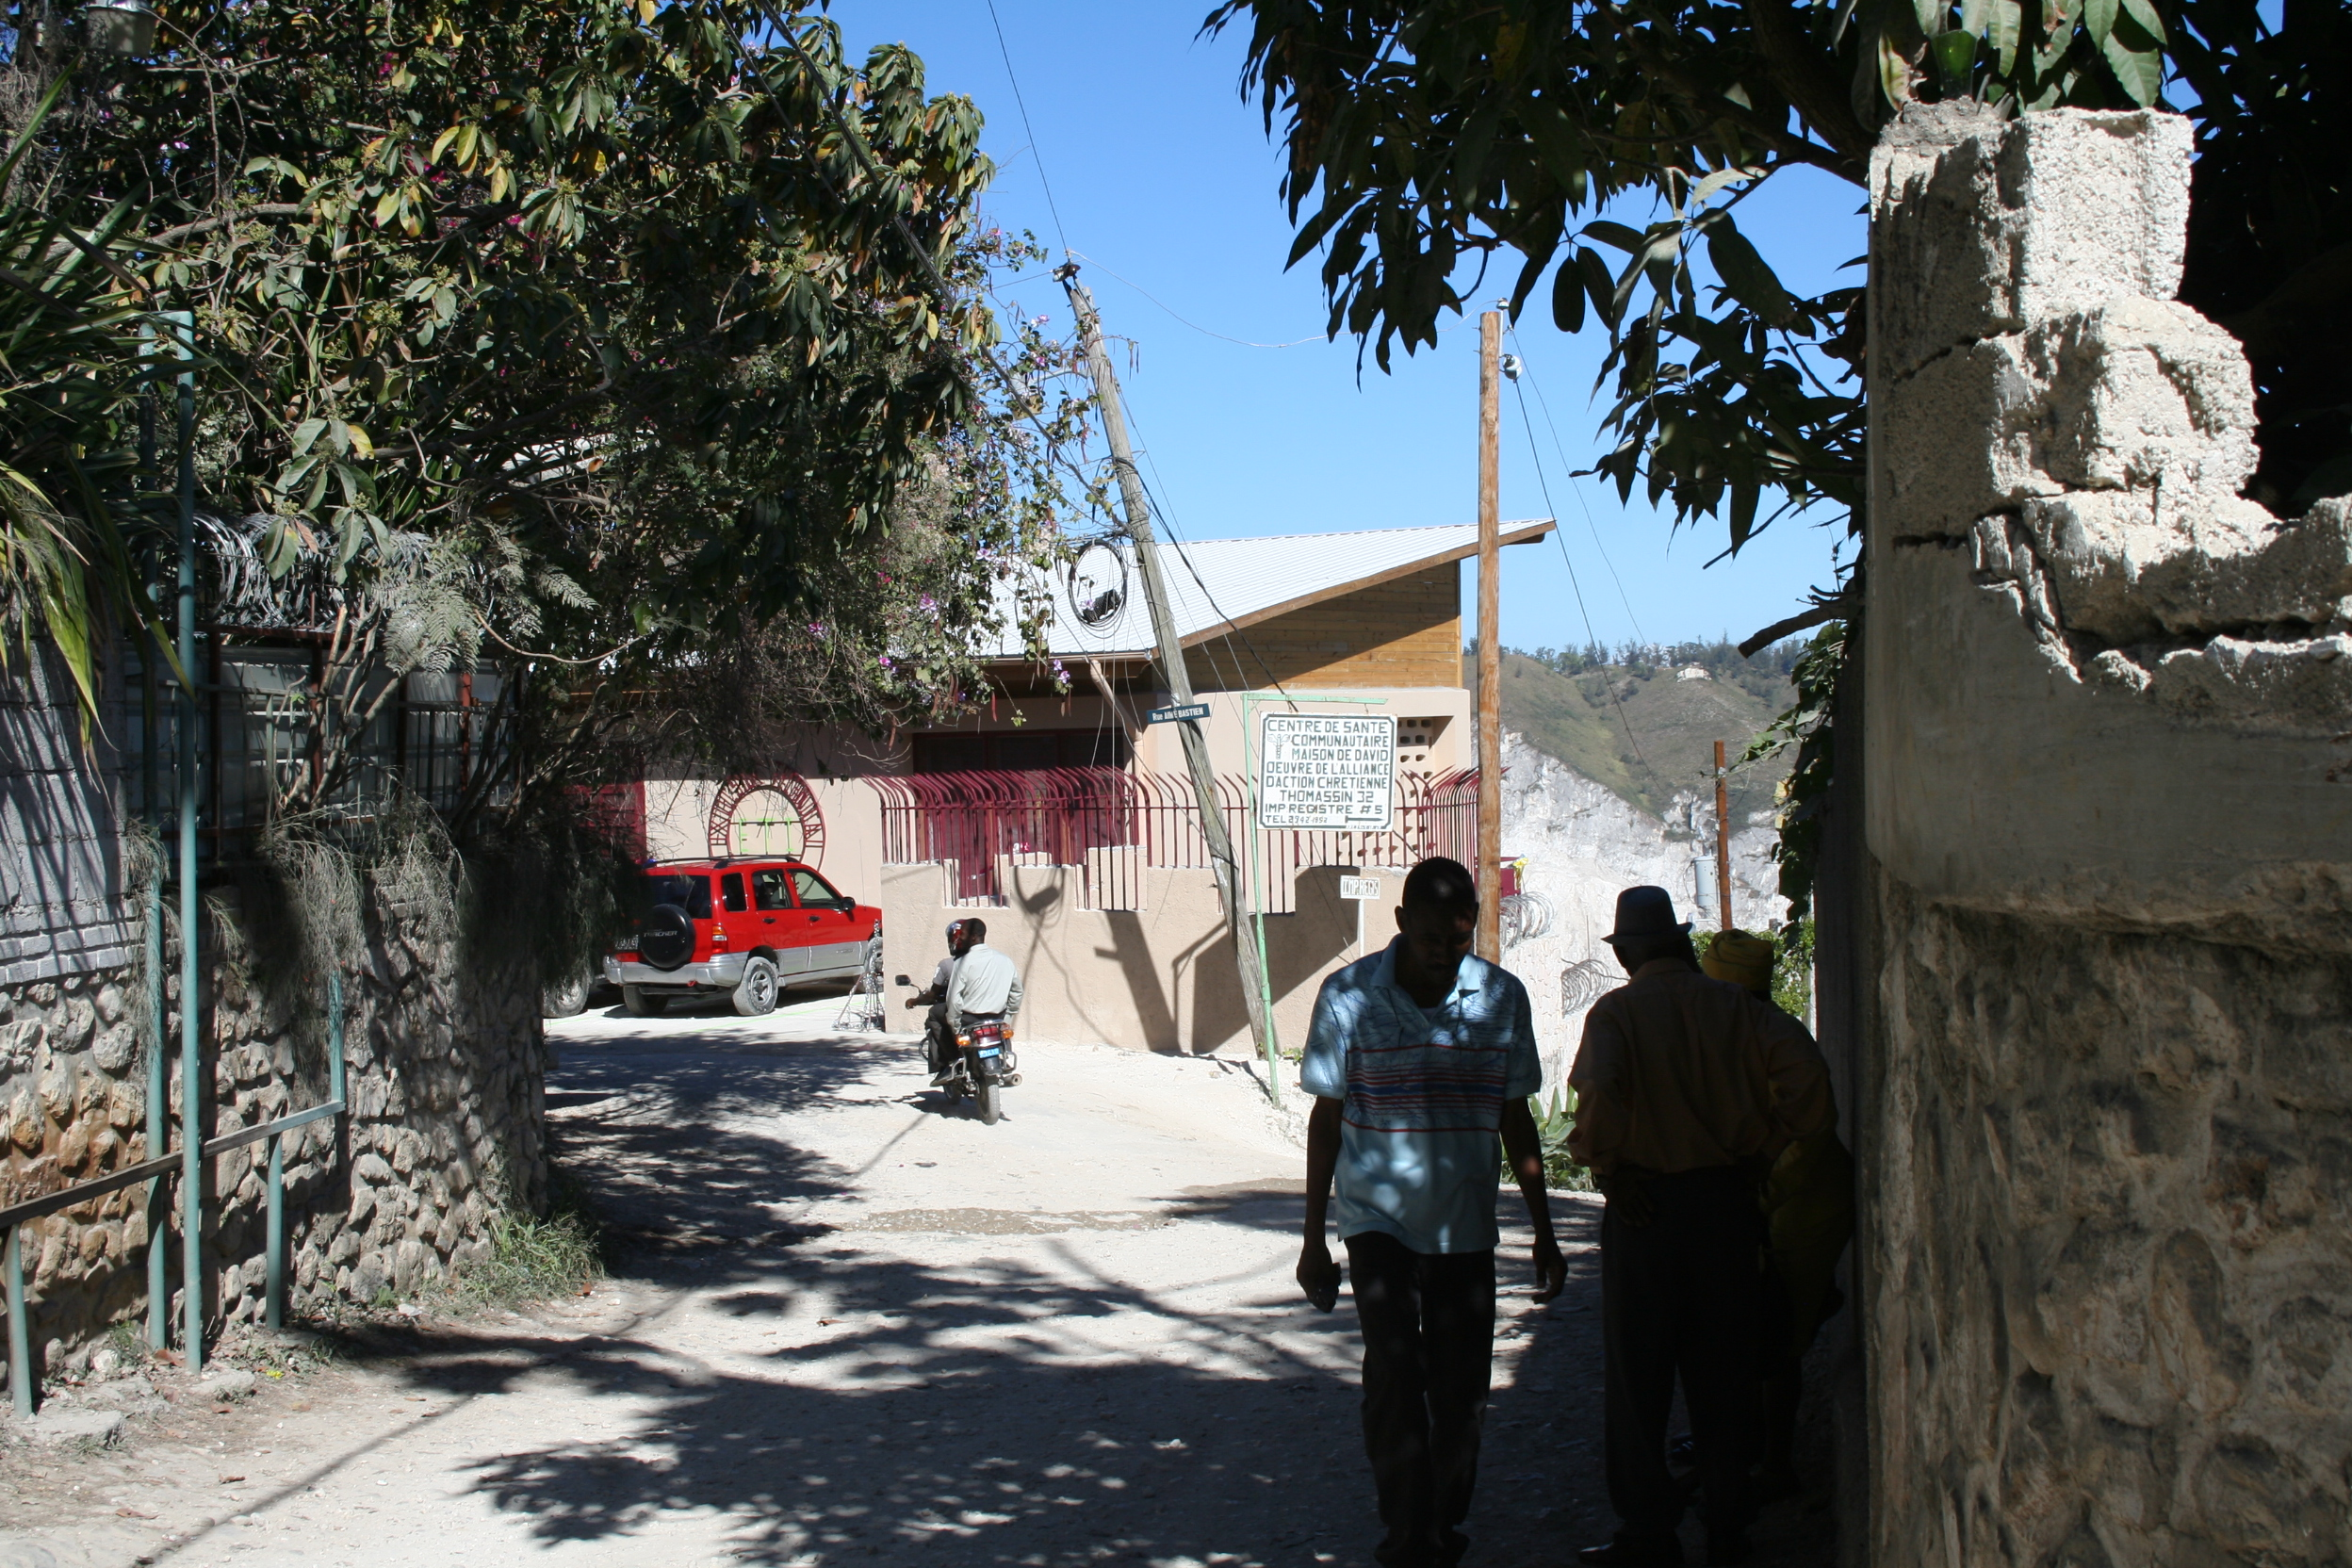 The facility is situated on a ridgetop above Port-au-Prince and accessed through narrow winding lanes.